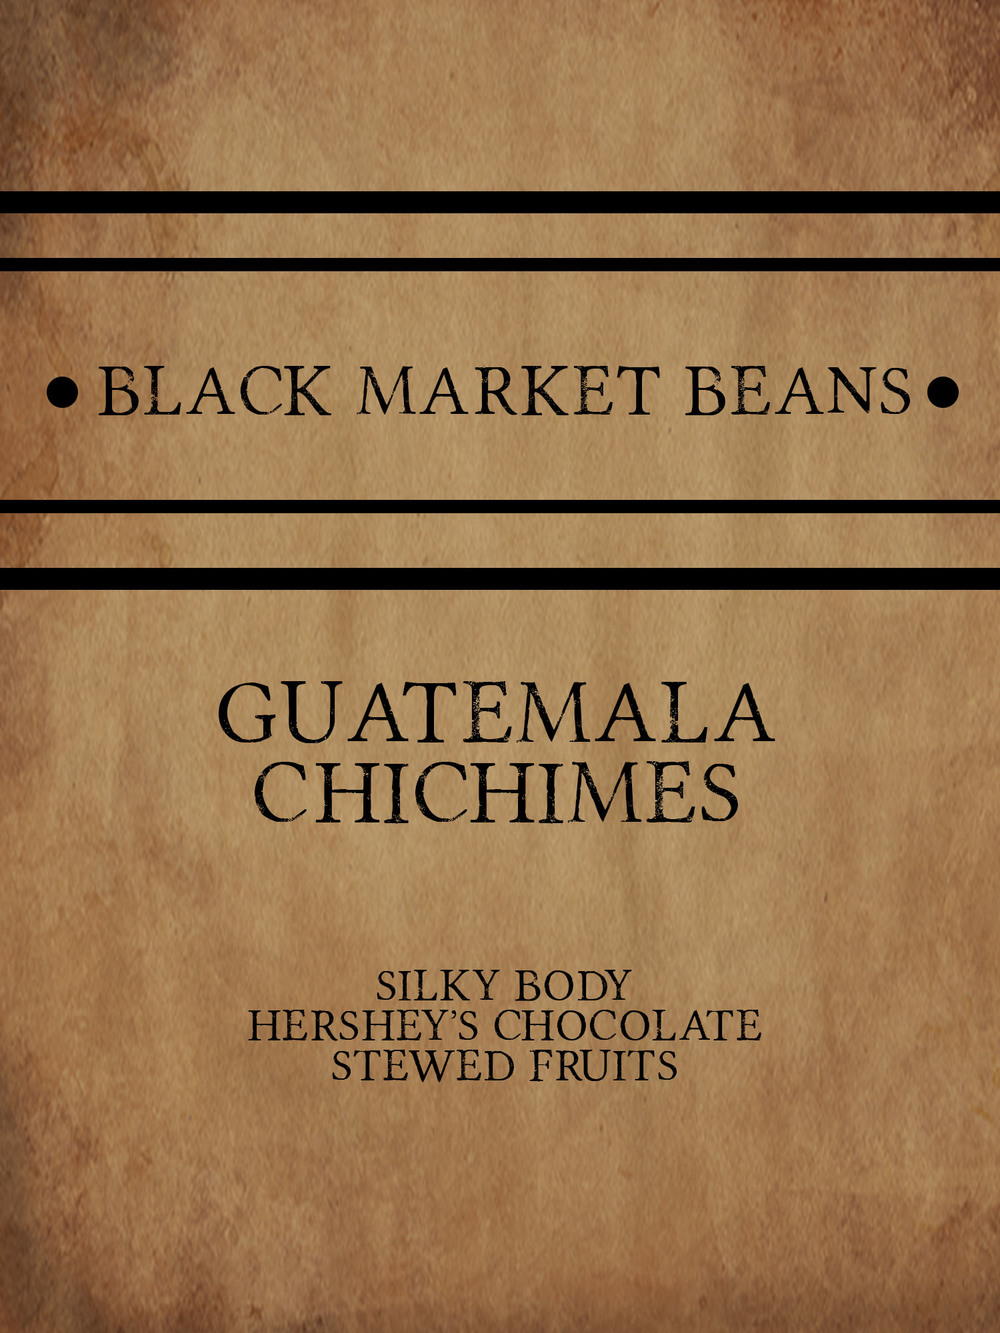 coffee_Guatemala_chichimes.jpg